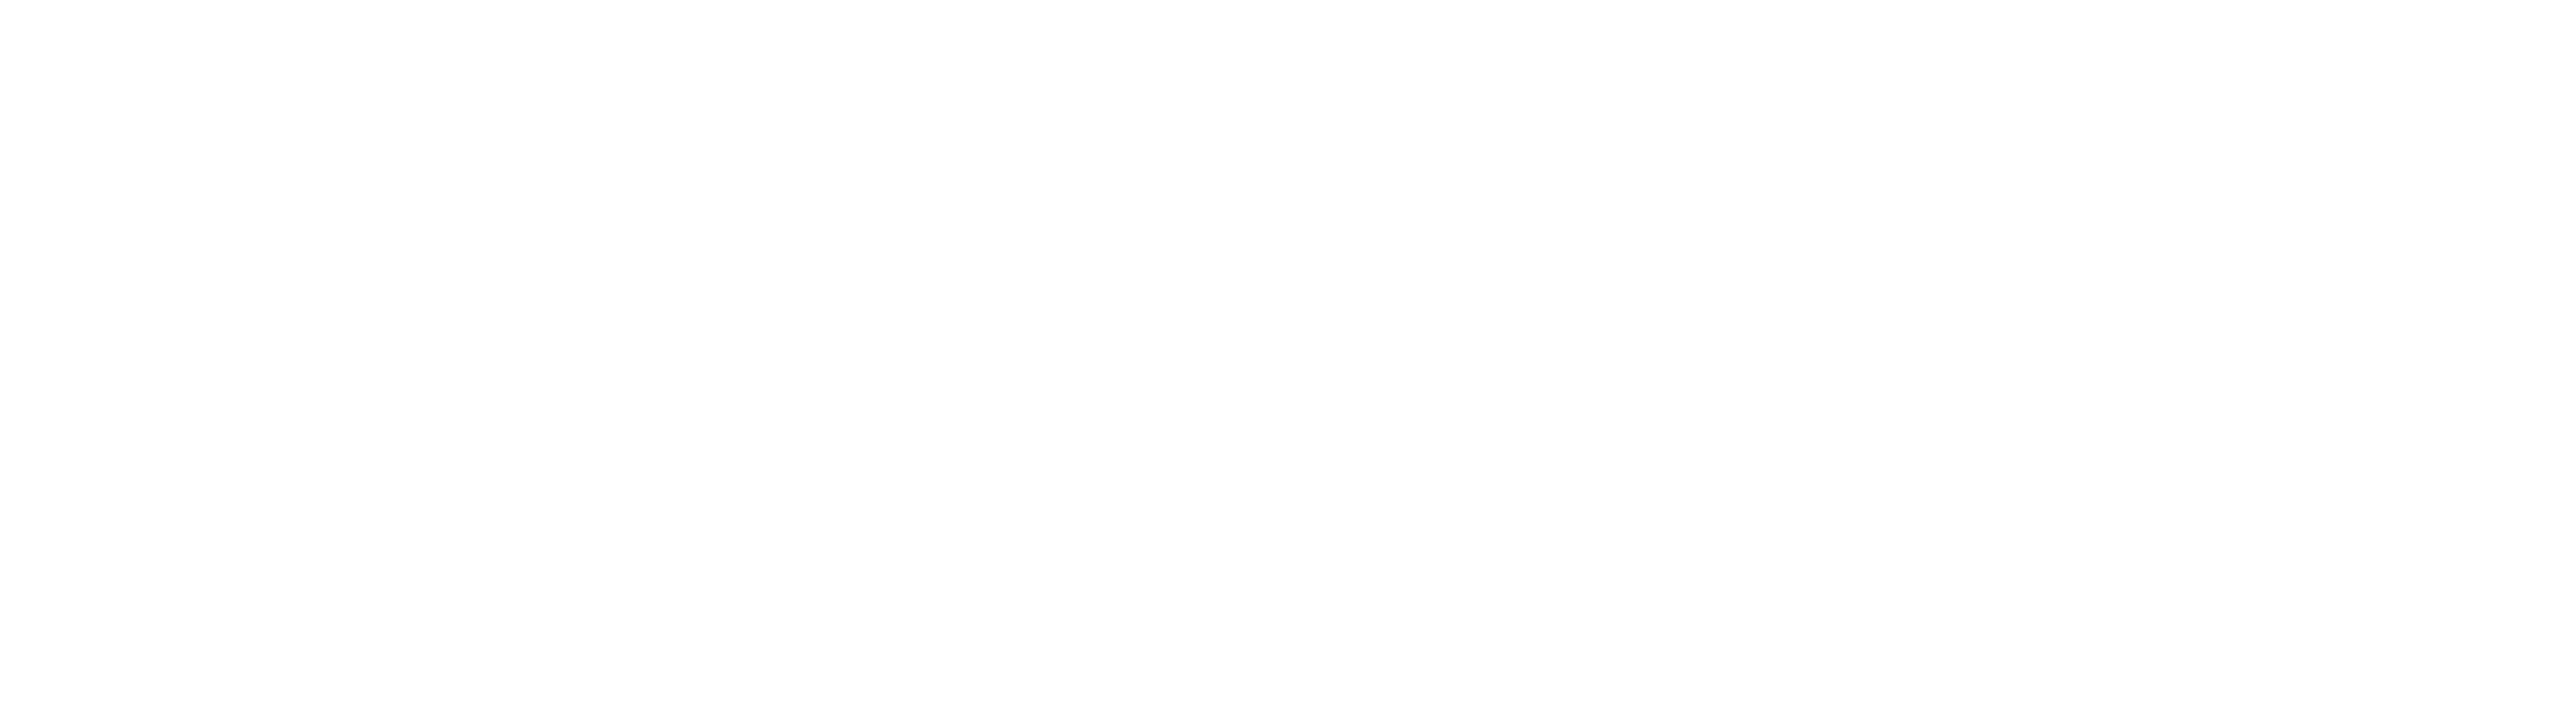 Erin Jennifer Florist - Flower Delivery in Boca Raton, FL